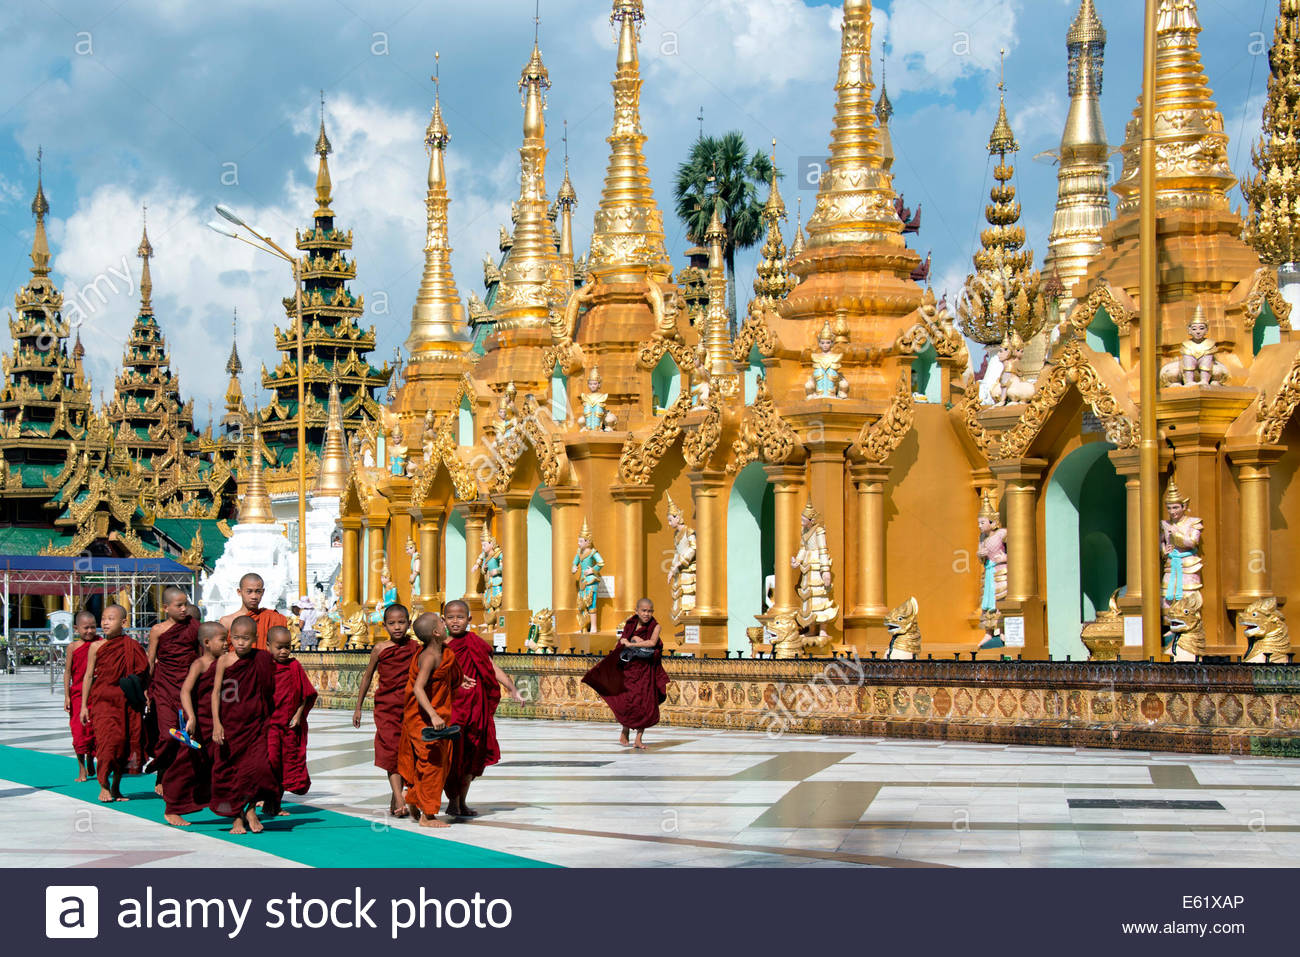 Shwedagon Pagoda Yangon Myanmar (Burma) Stock Photo